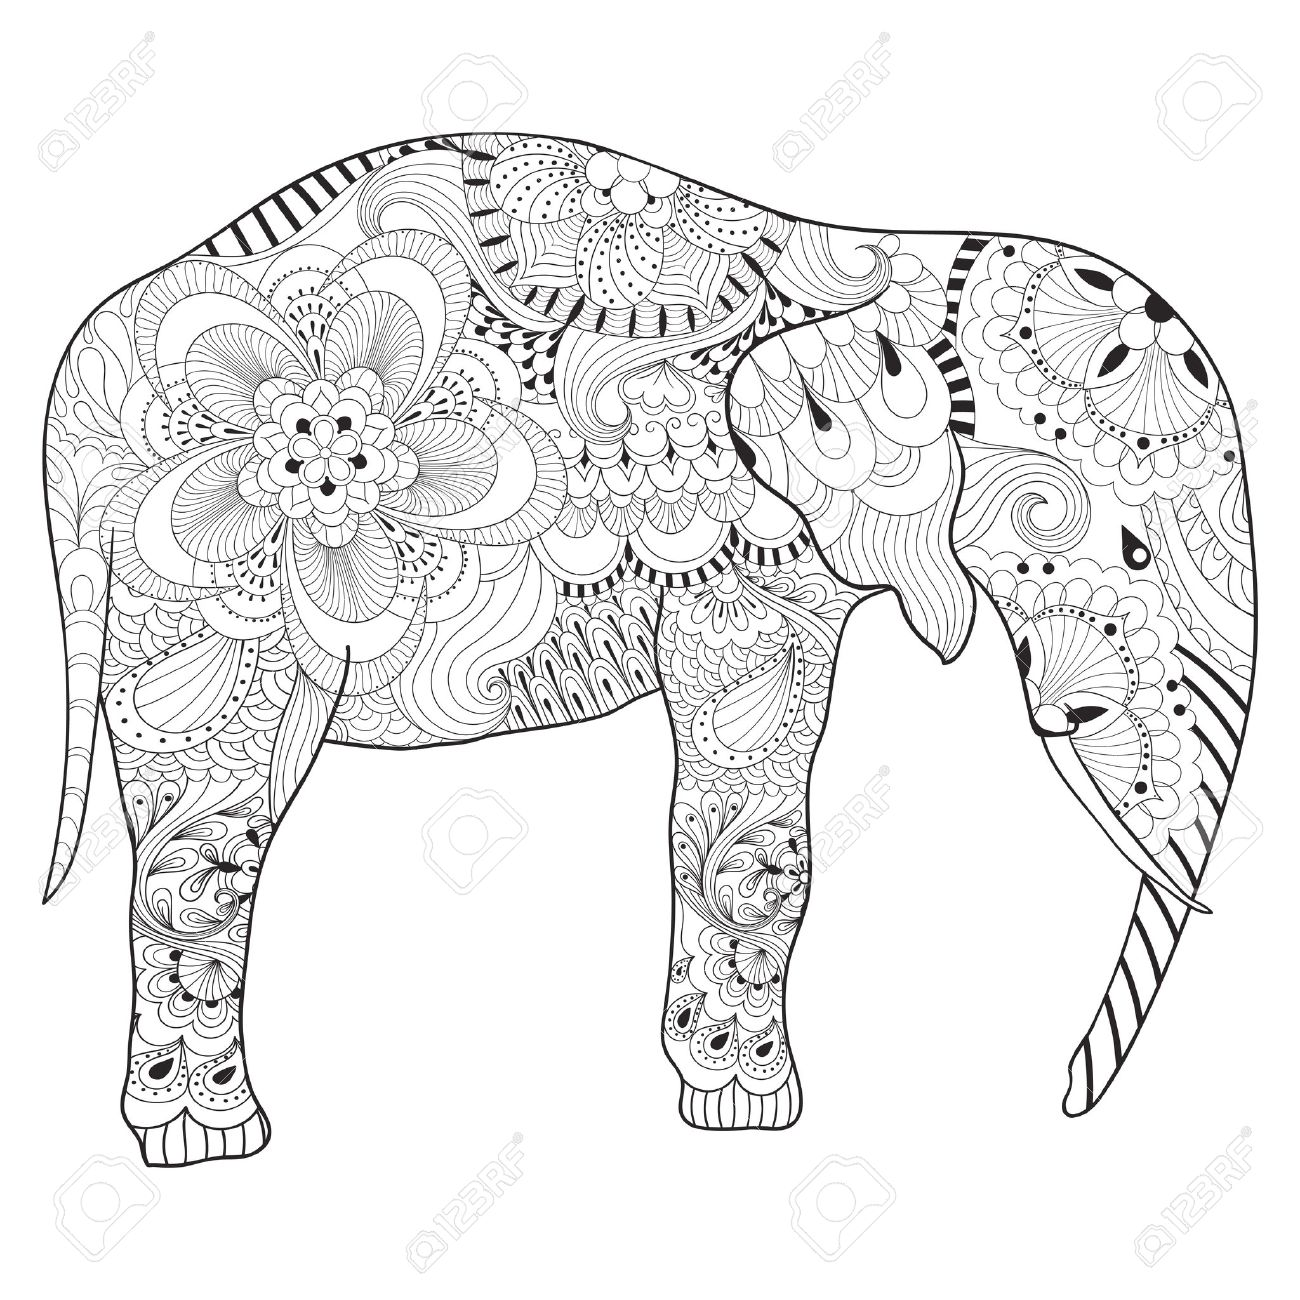 1300x1300 Hand Drawn Elephant With Mandala For Adult Antistress Coloring